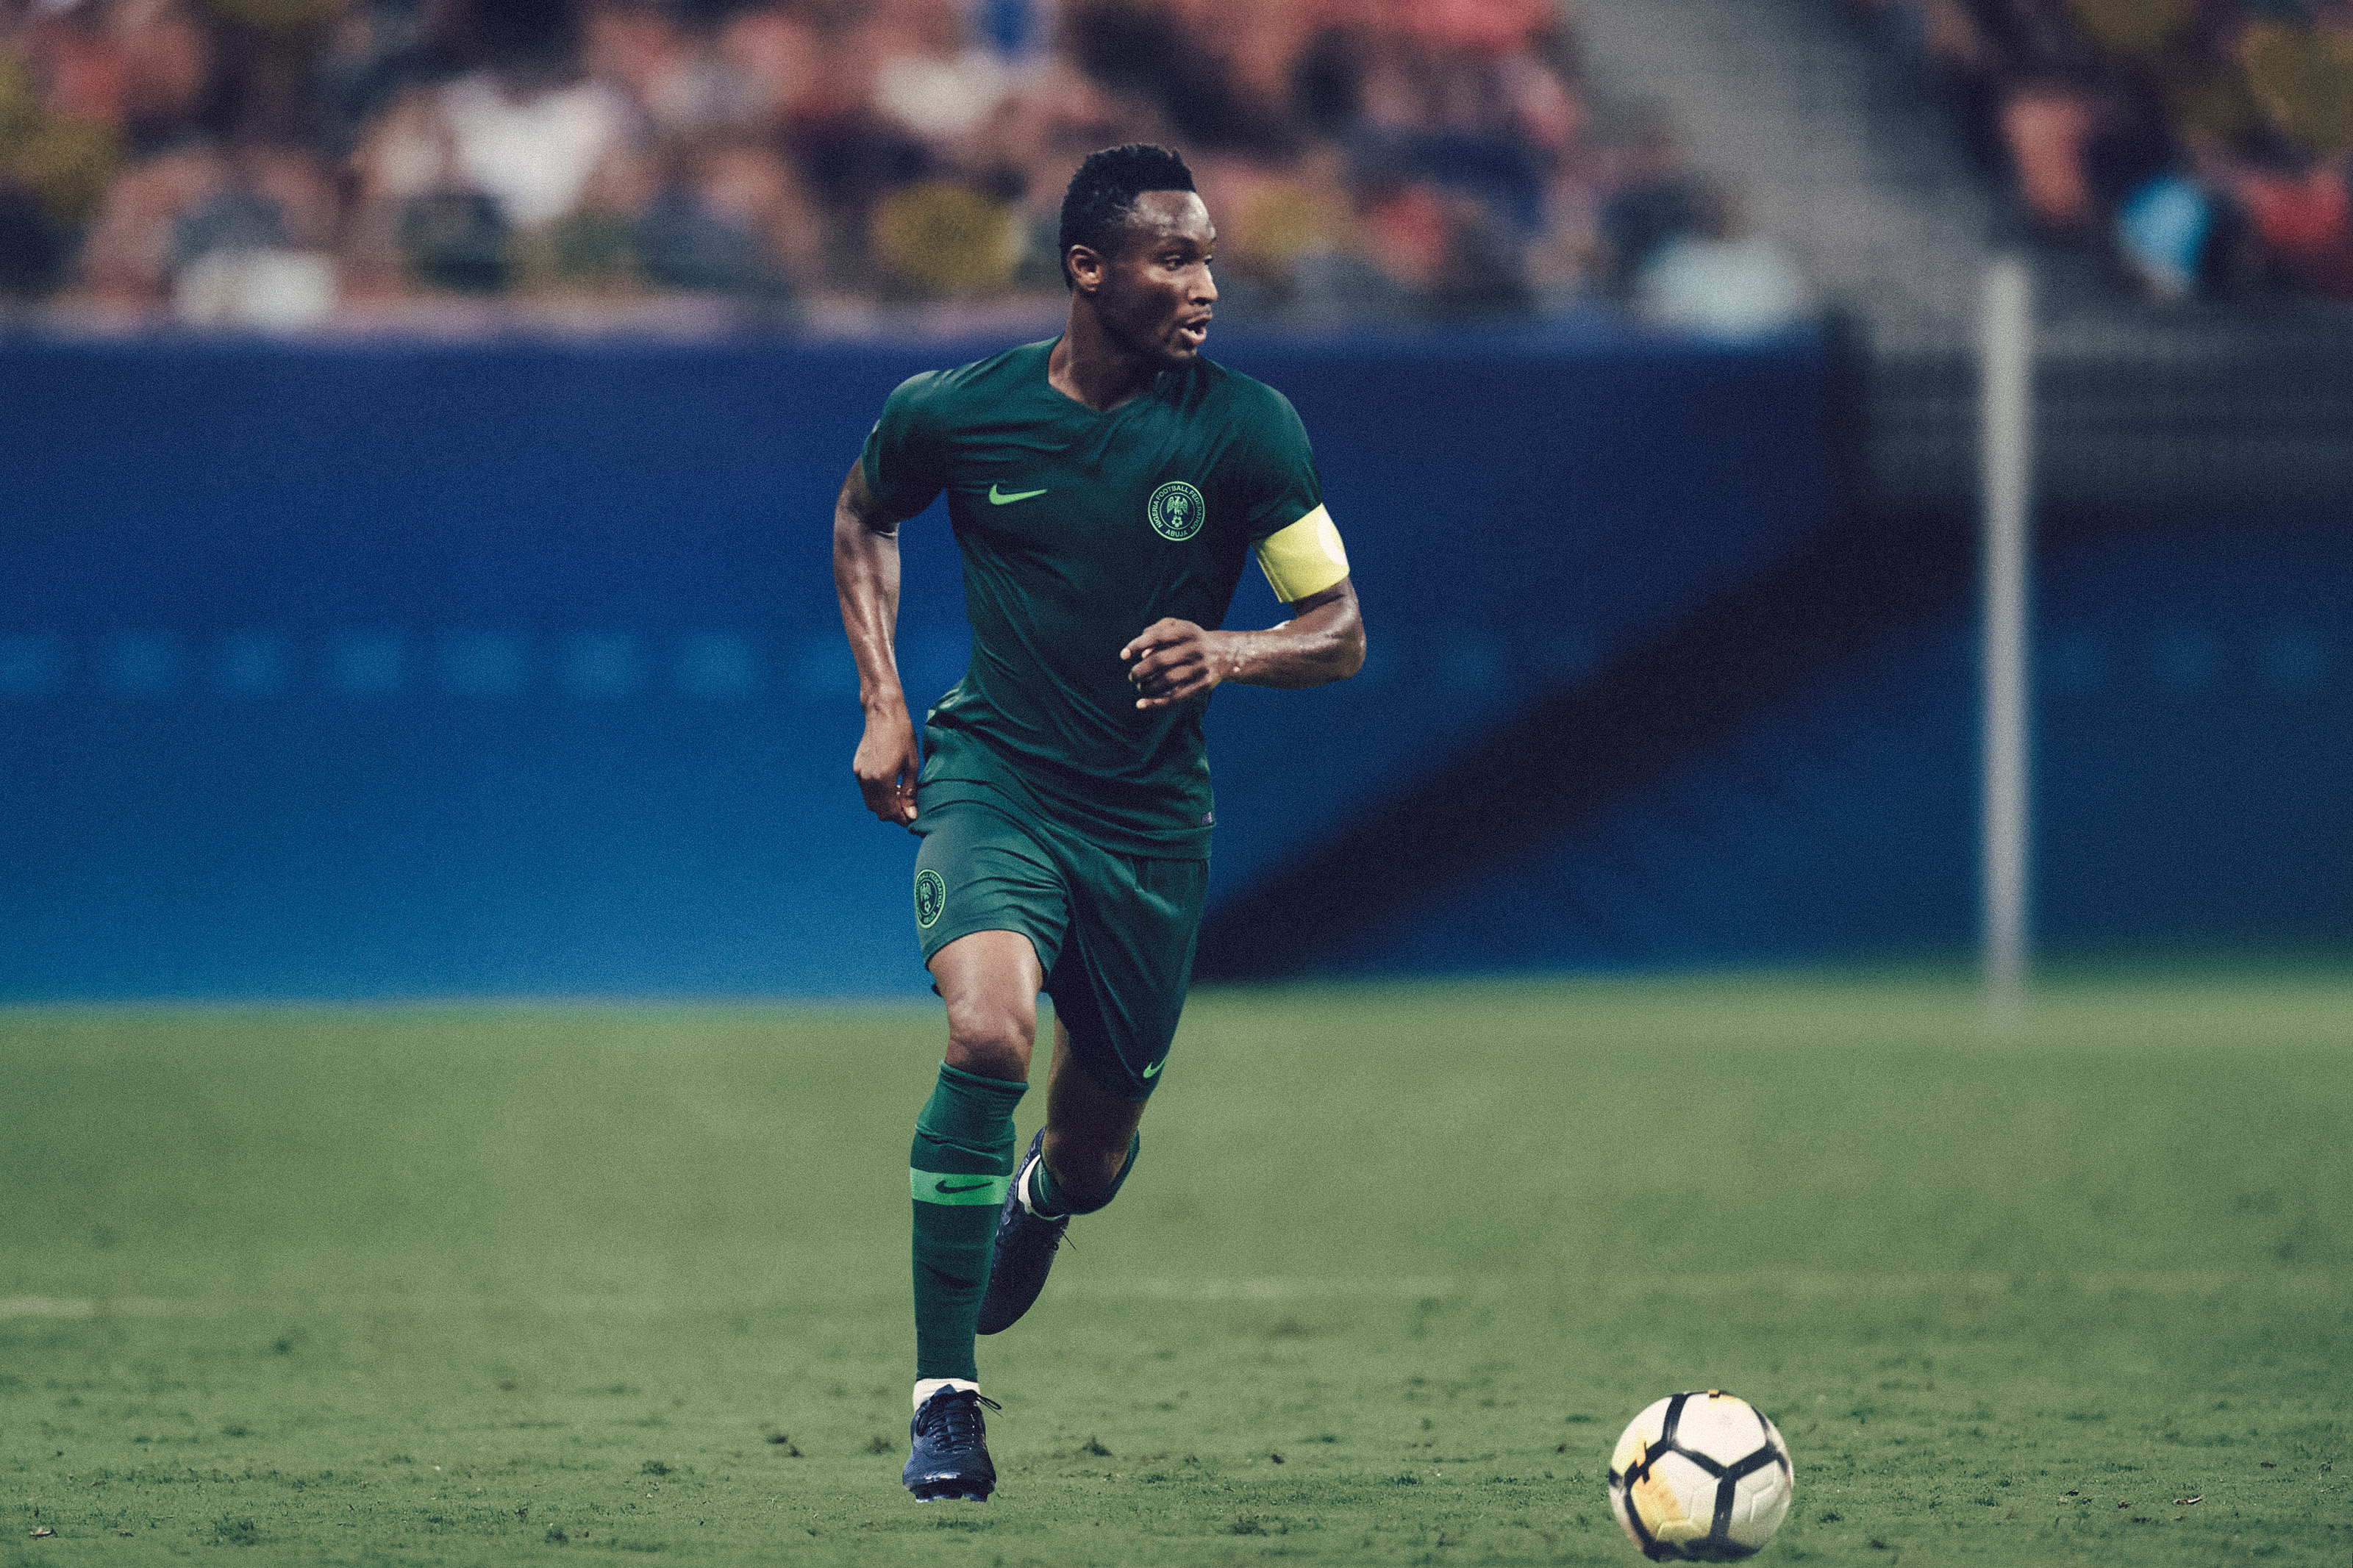 b6f6e6c54 Nigeria Super Eagles World Cup kit by Nike is a hit — Quartz Africa